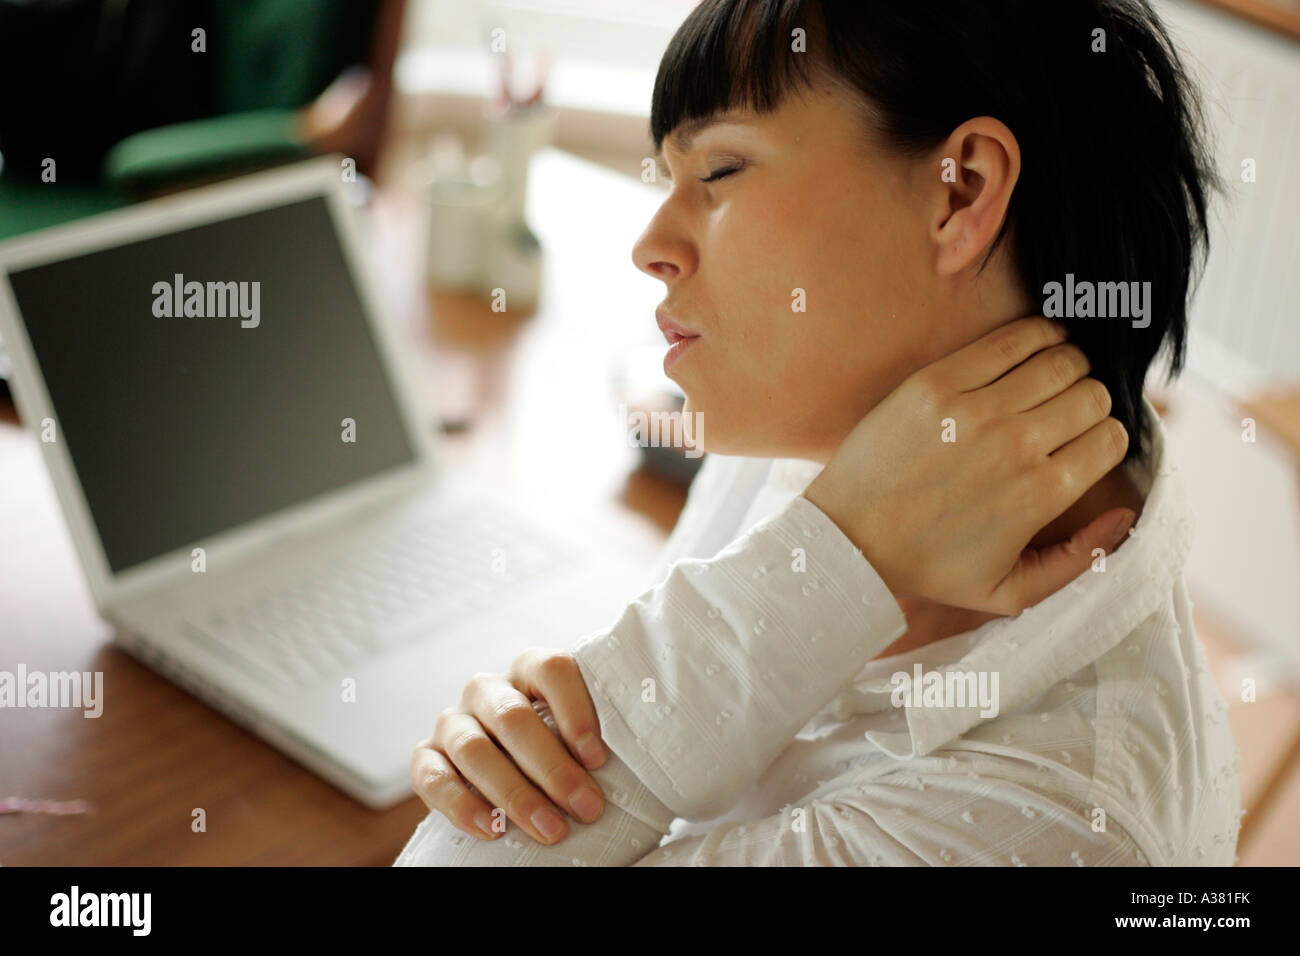 woman with sore shoulder from using the computer - Stock Image